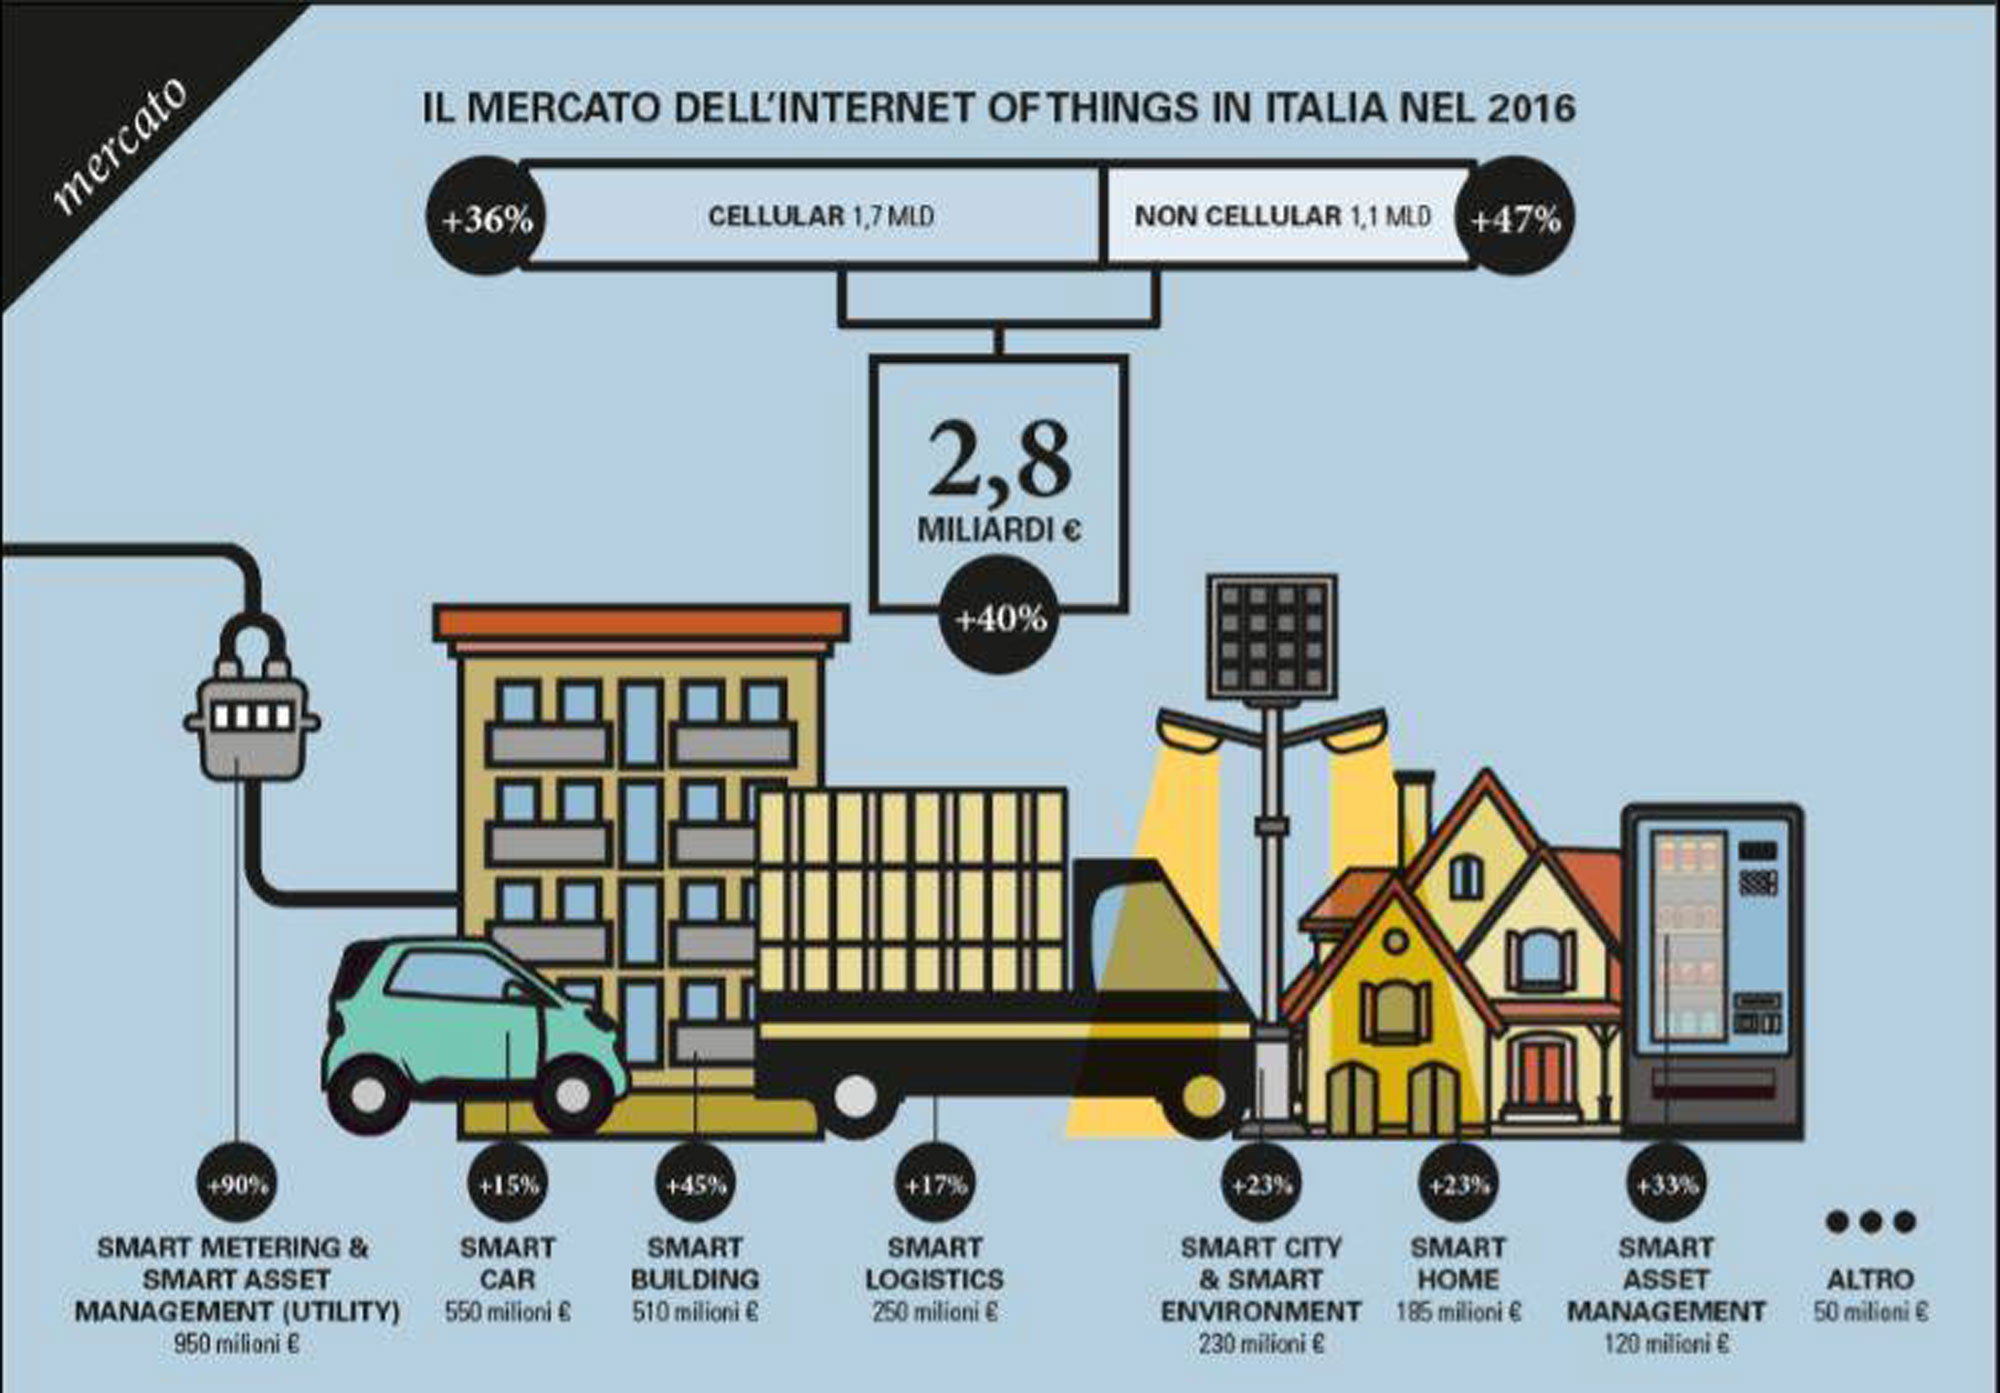 La crescita del mercato dell'Internet of Things in Italia